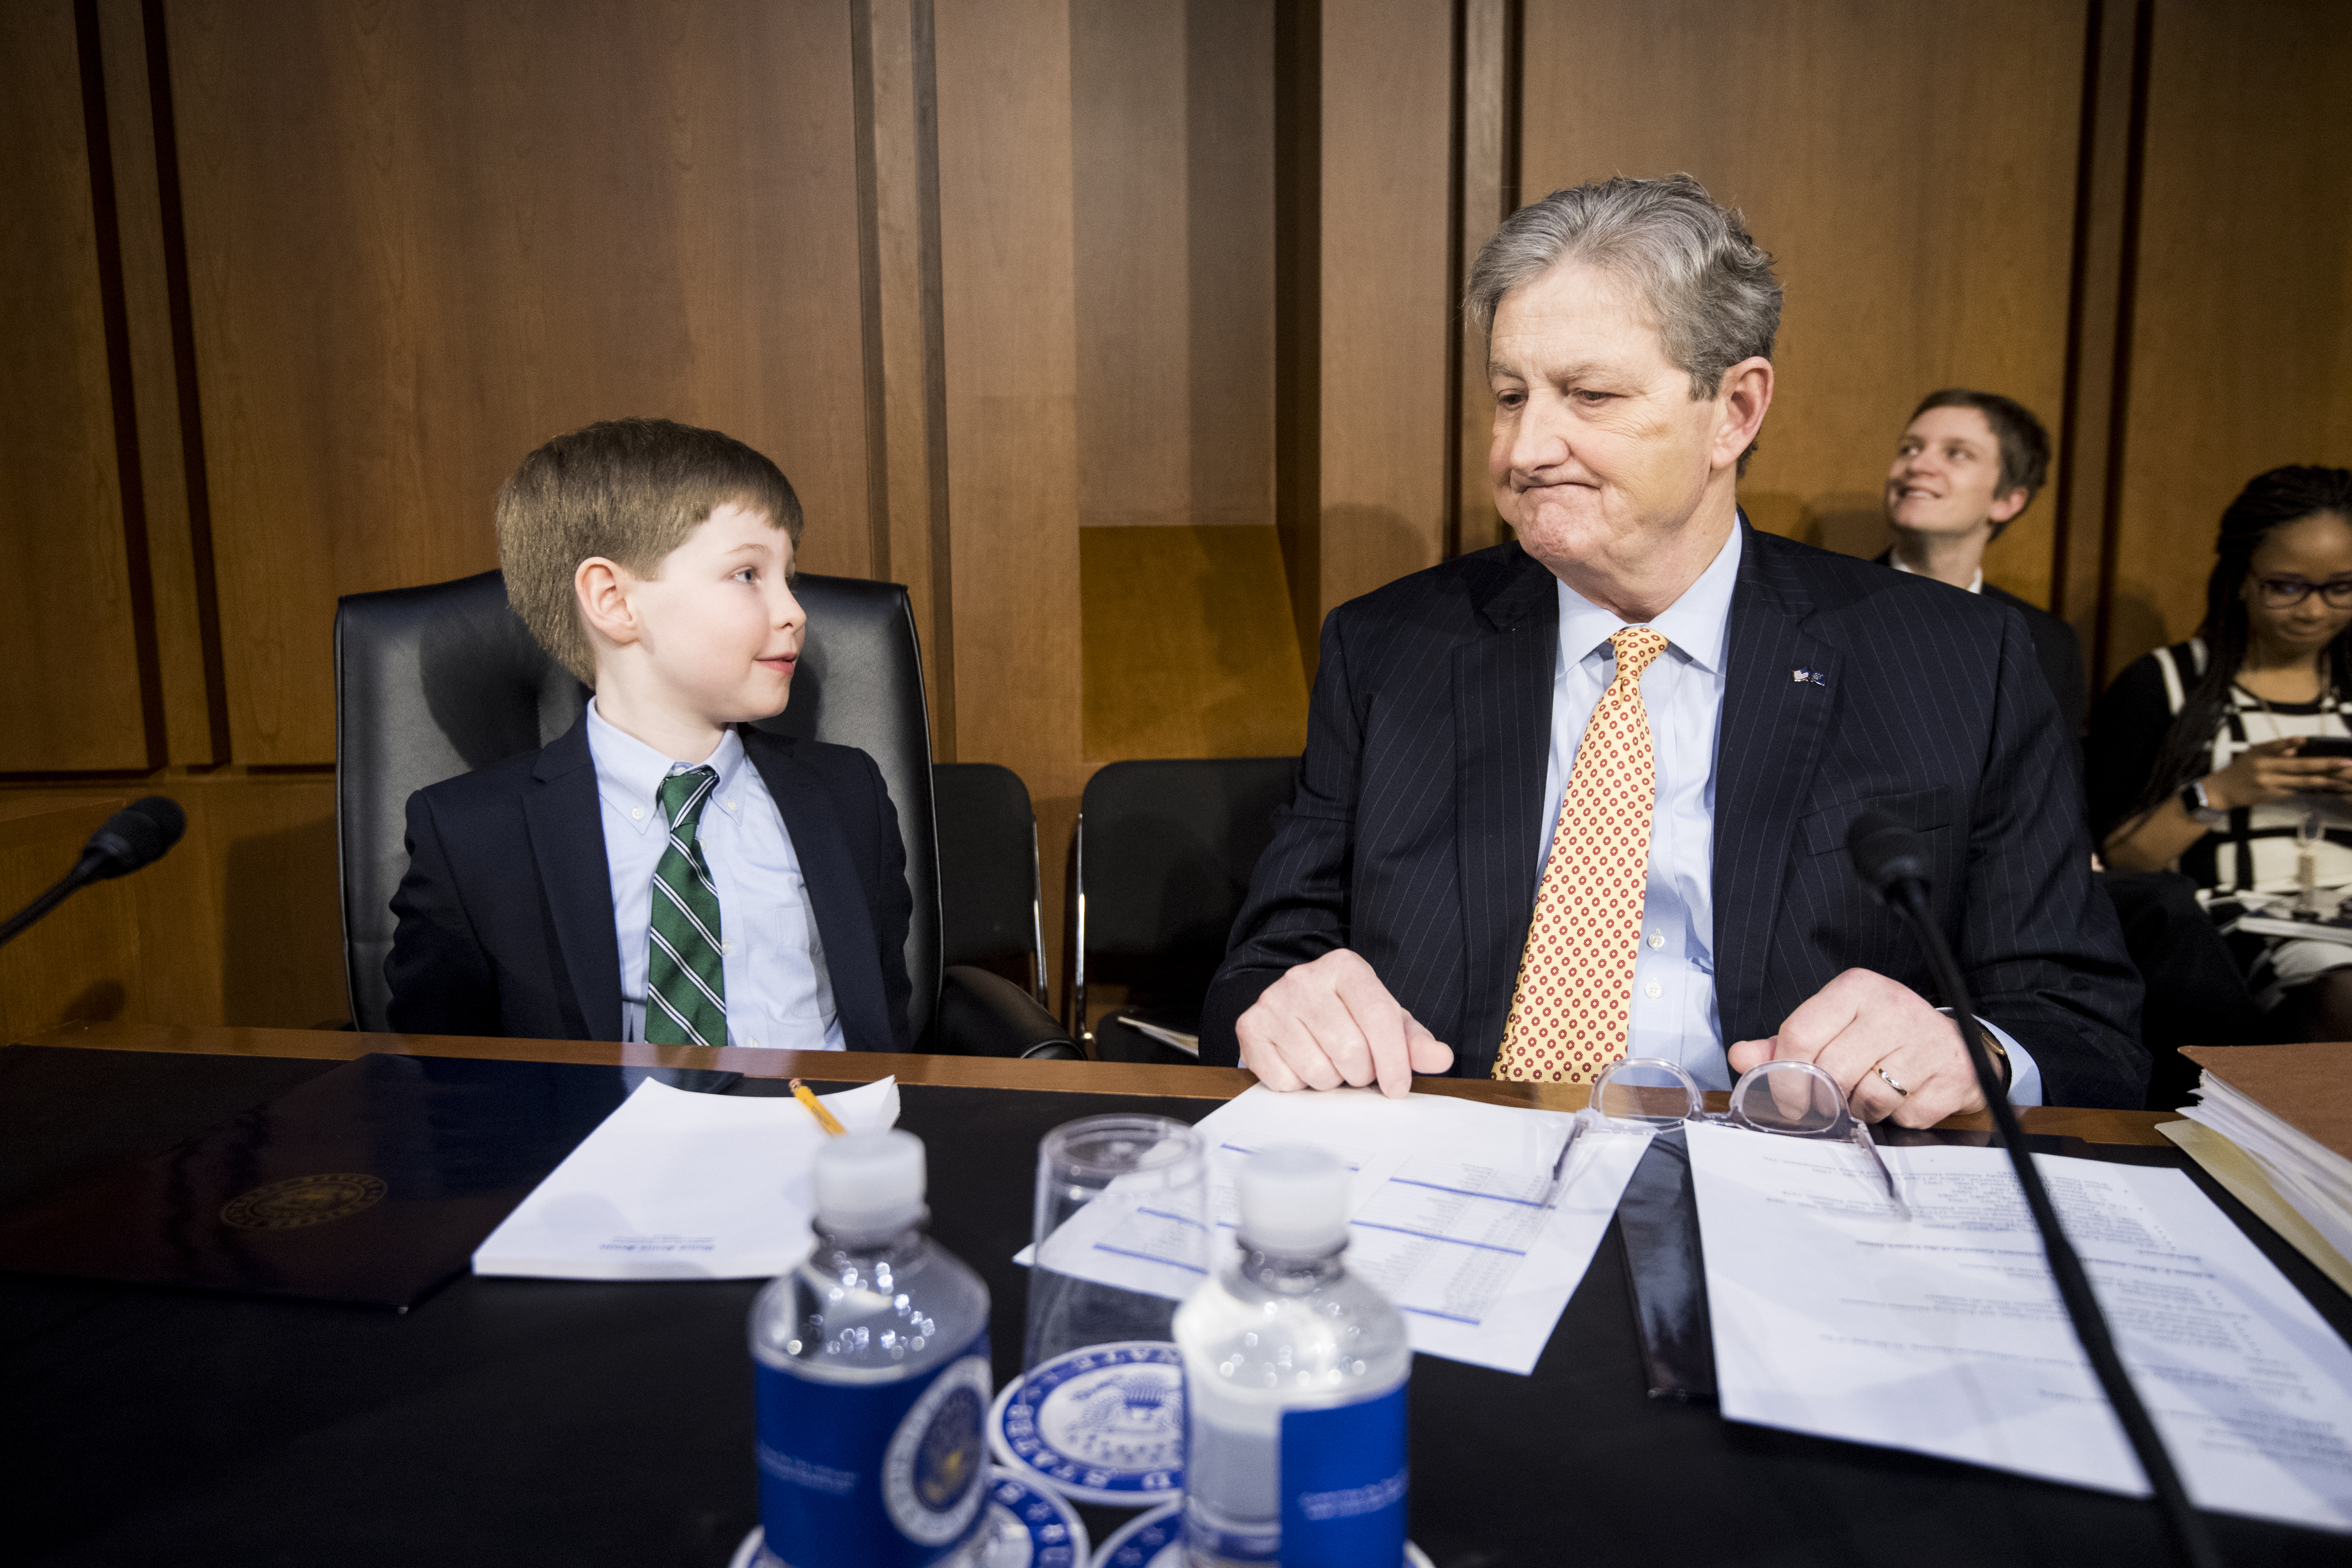 UNITED STATES - JANUARY 15: Sen. John Kennedy, R-La., chats with William Barr's grandson Liam about making snowballs and flying on Air Force One before the start of the confirmation hearing for William P. Barr, nominee to he Attorney General of the United States, in the Senate Judiciary Committee on Tuesday, Jan. 15, 2019. (Photo By Bill Clark/CQ Roll Call)